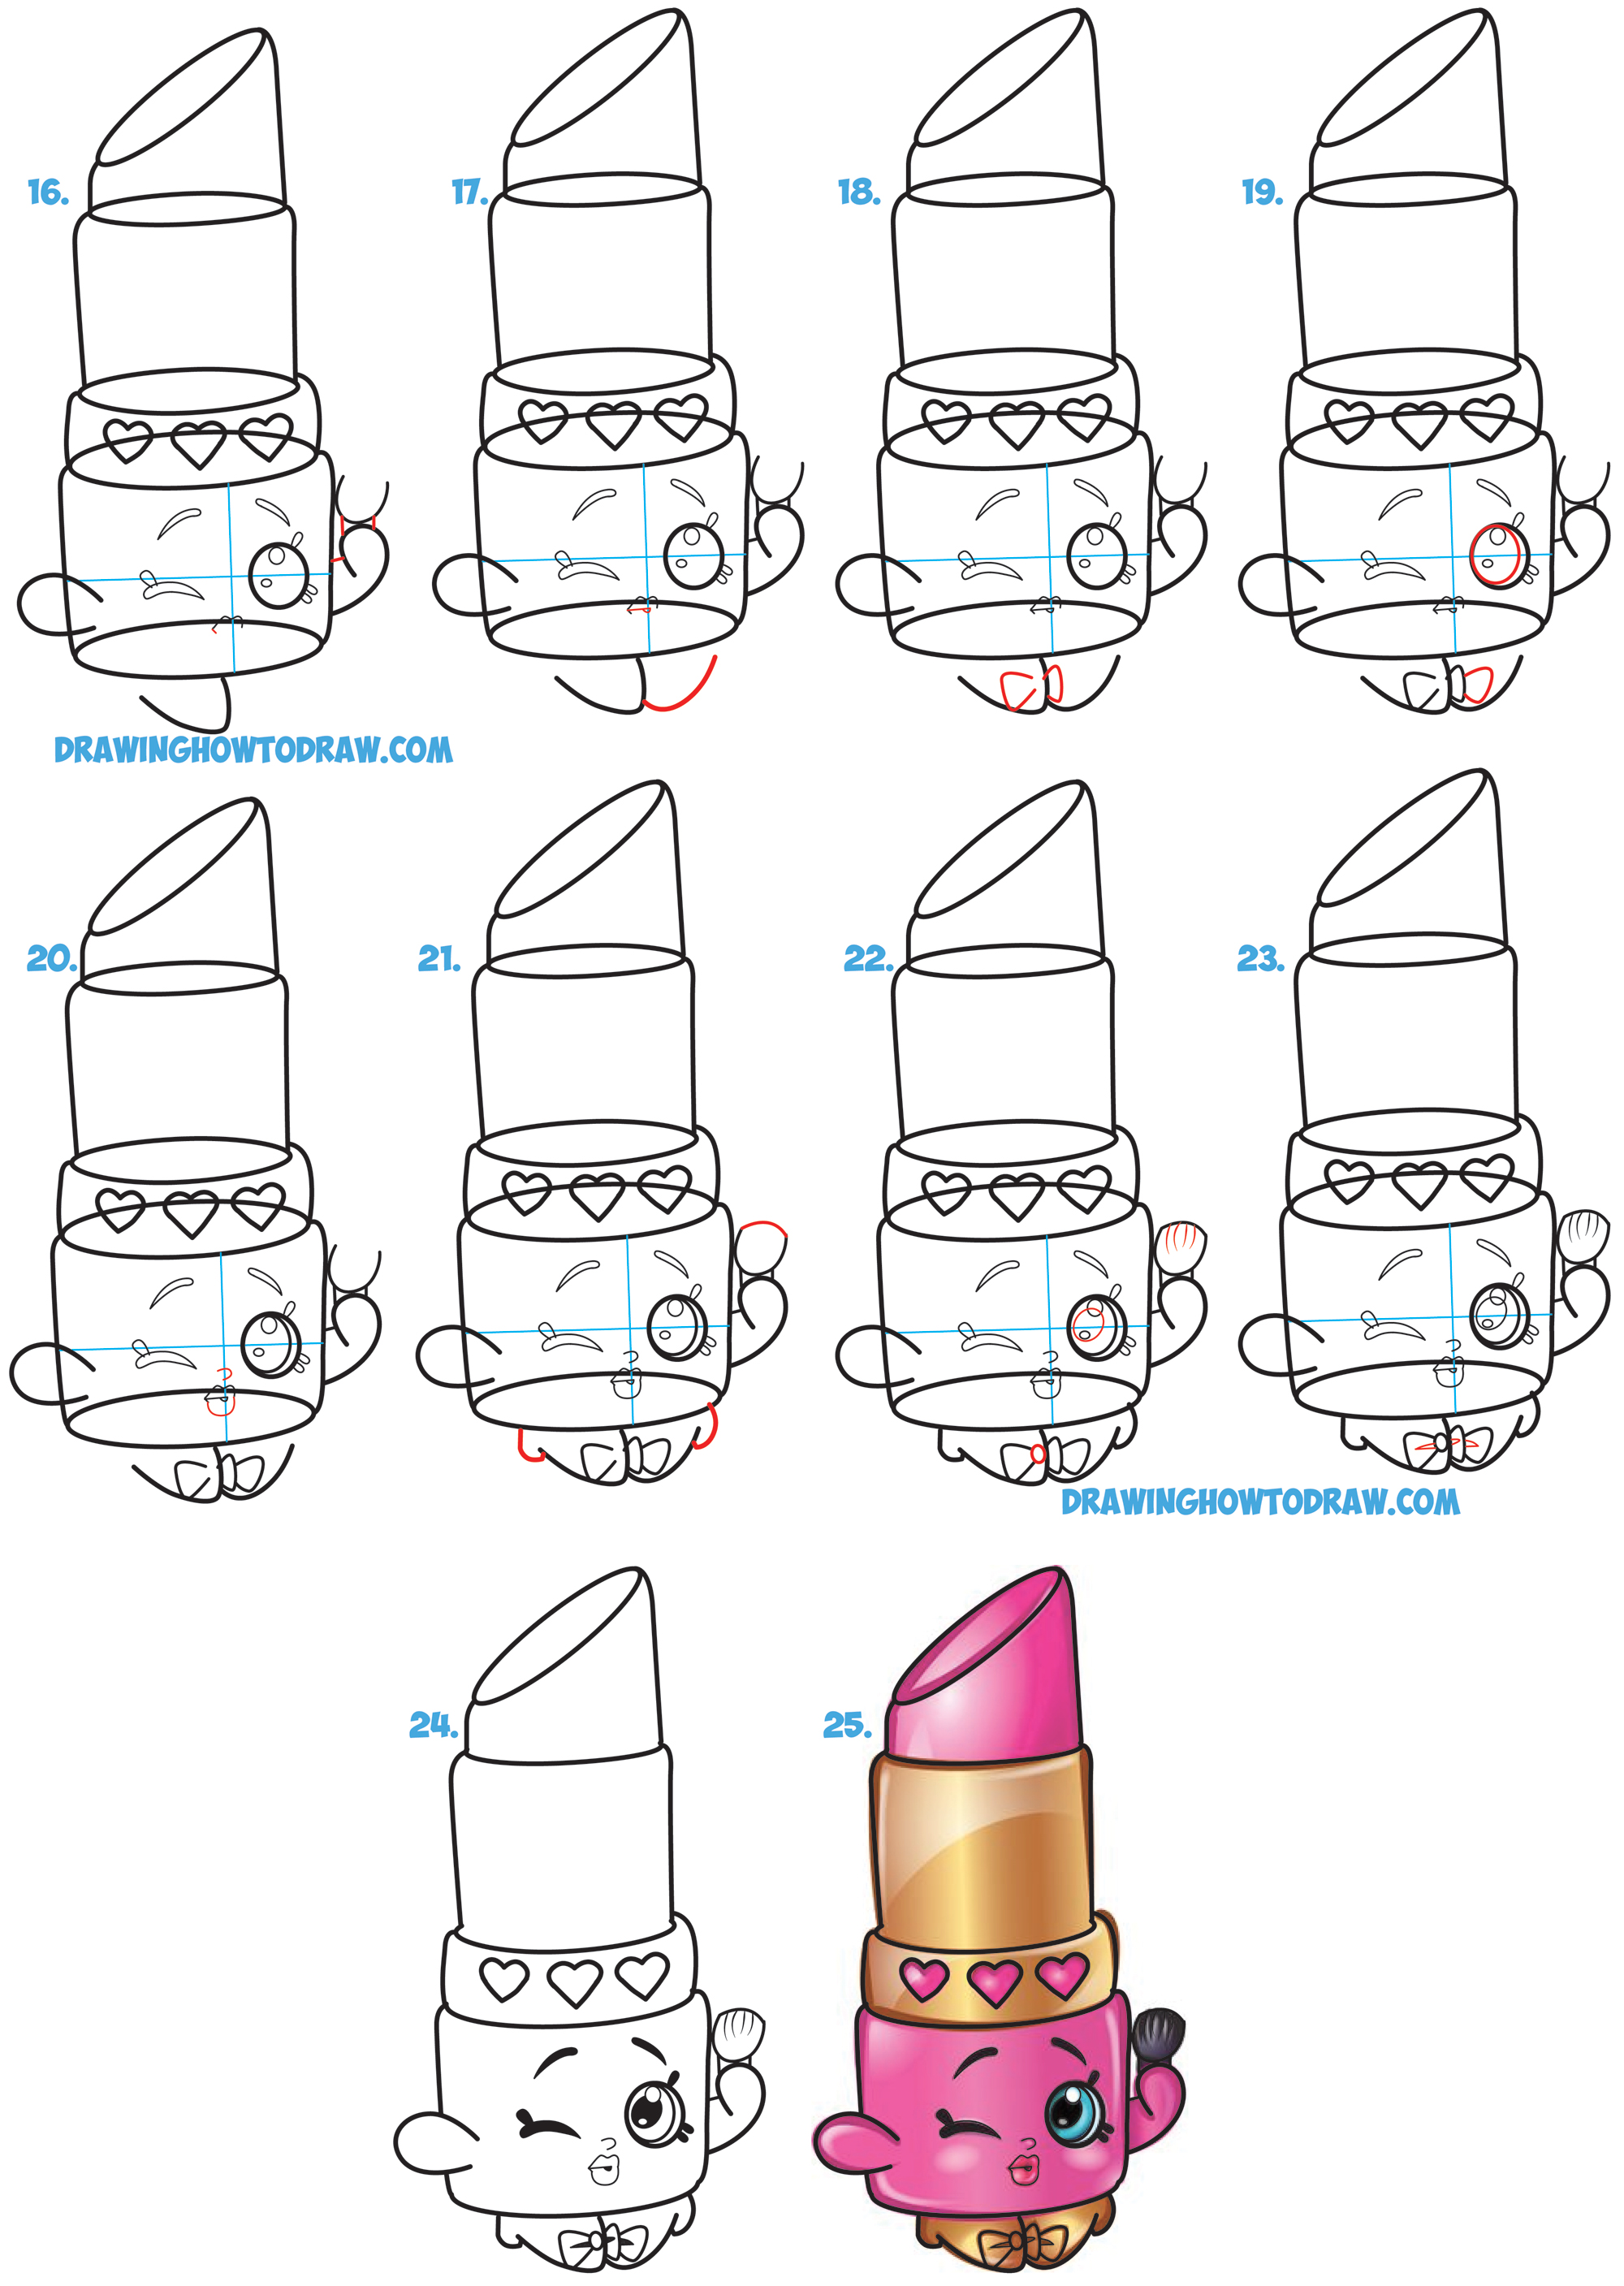 How To Draw Lippy Lips Cute Lipstick From Shopkins Easy Step By